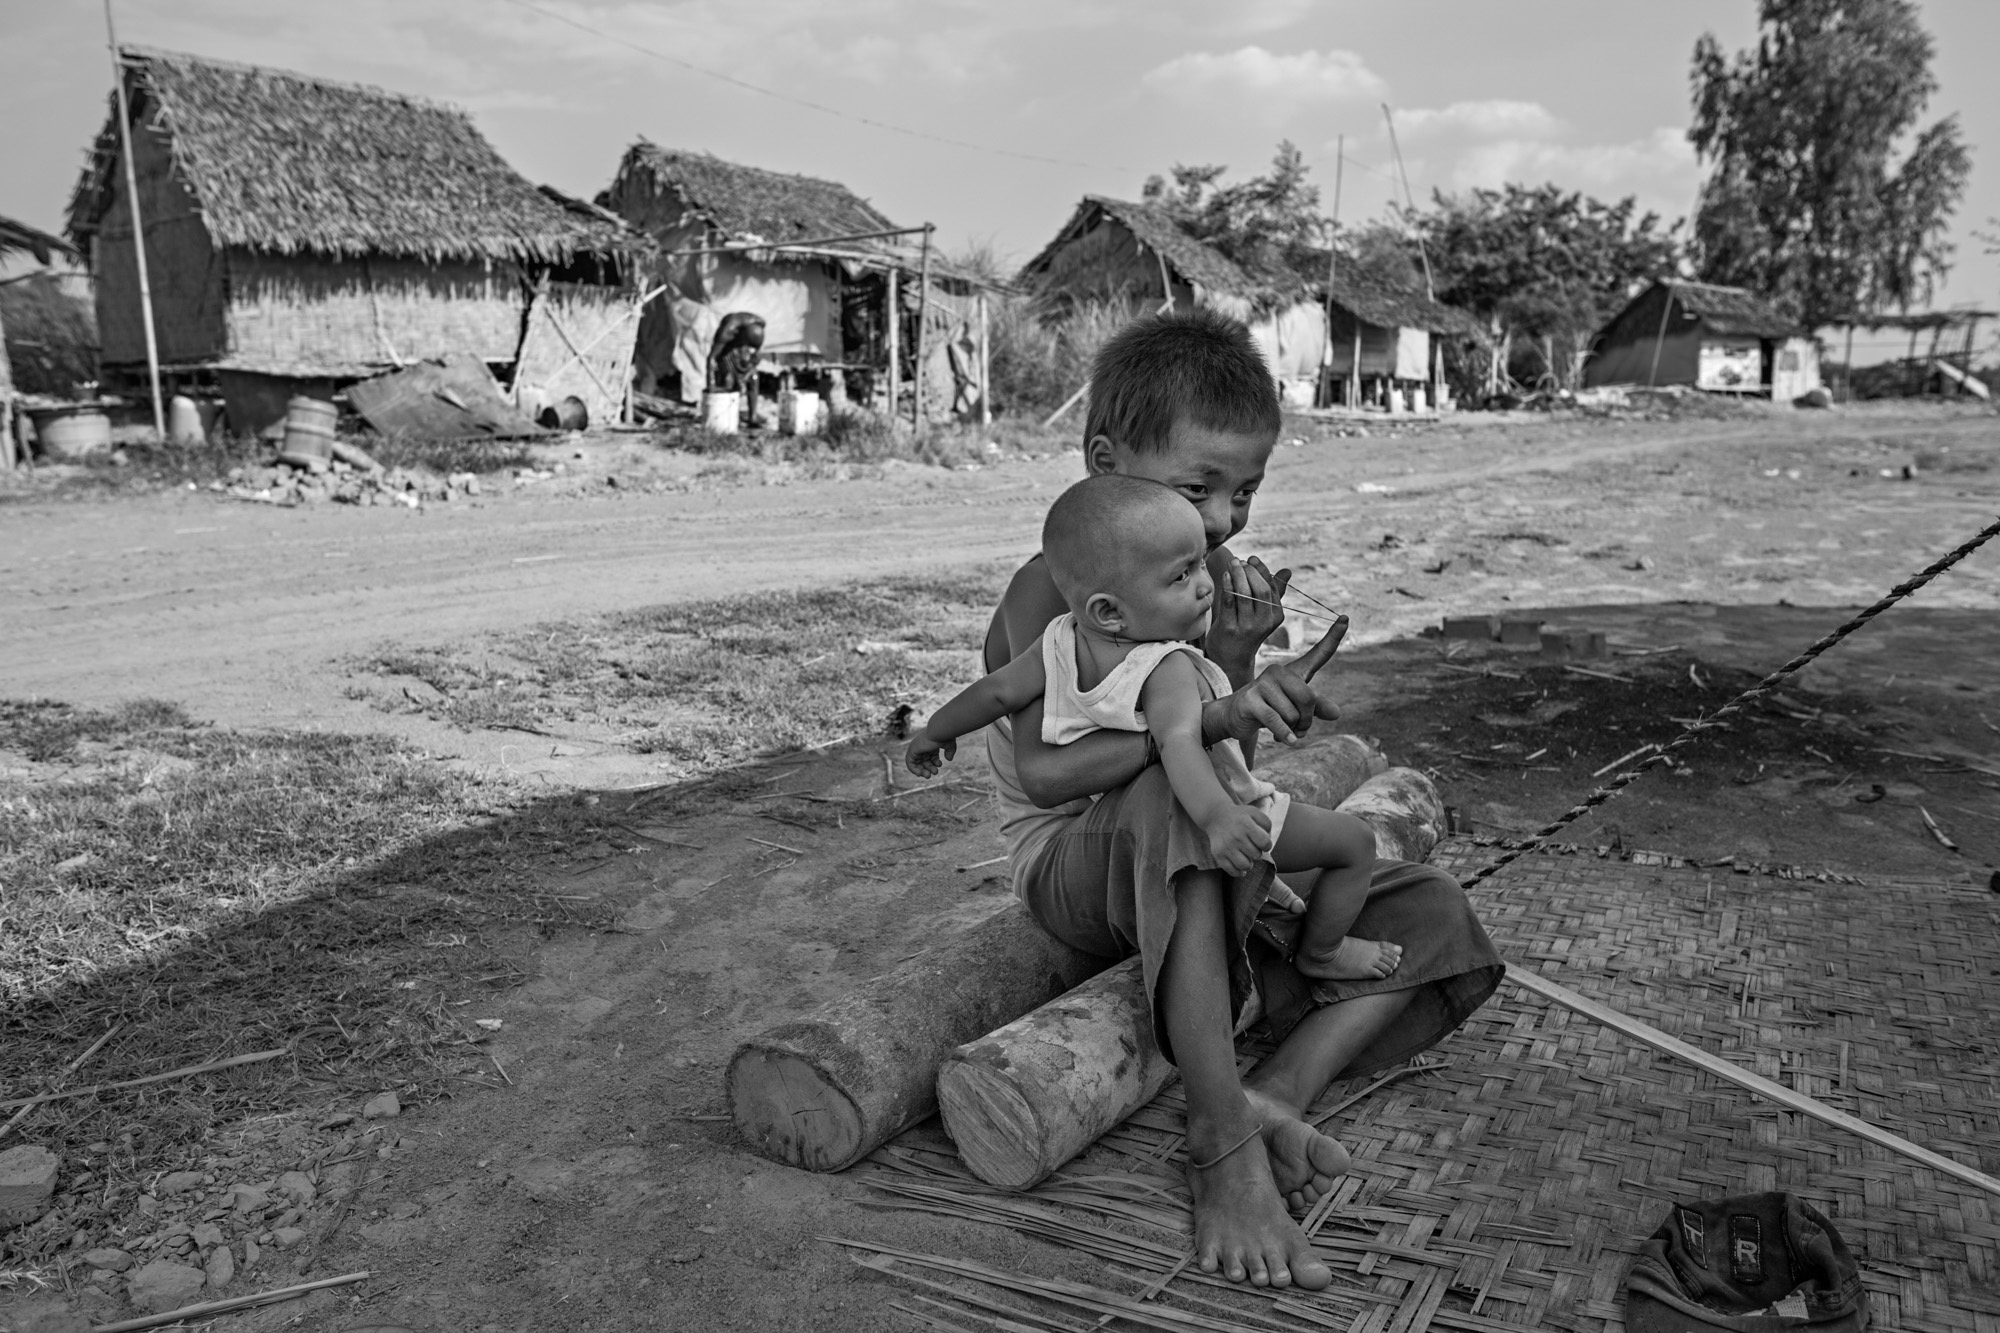 Than Ko holds his baby sister, Sandar Lin, while preparing to shoot a rubberband at his other sister, Saung Ning Wai. Than Ko is the primary caretaker of Sandar Lin during the day while his mother and older brother work.